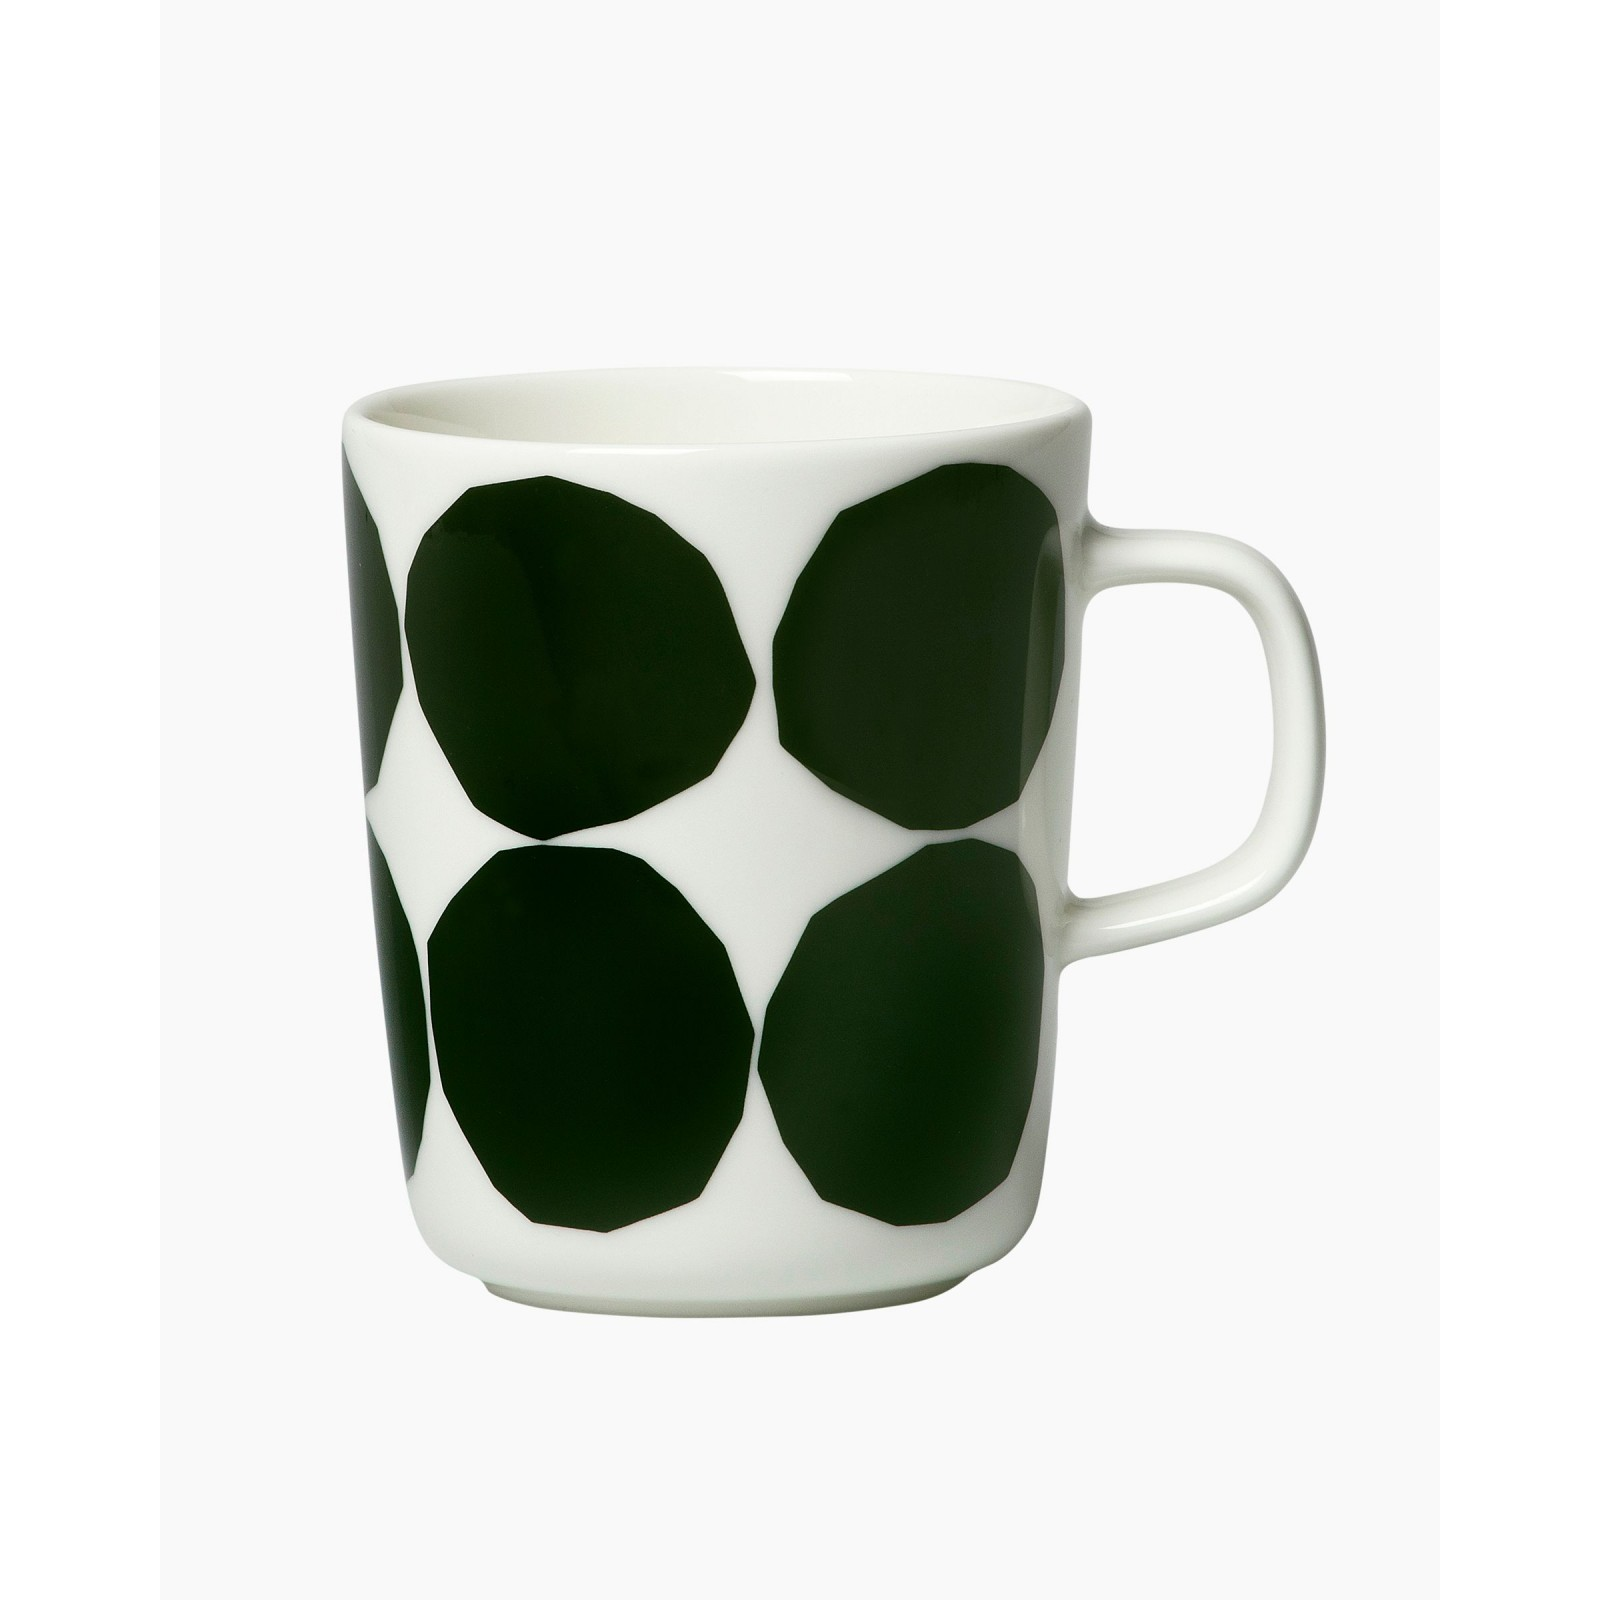 Kivet mug 2,5dl white/dark green